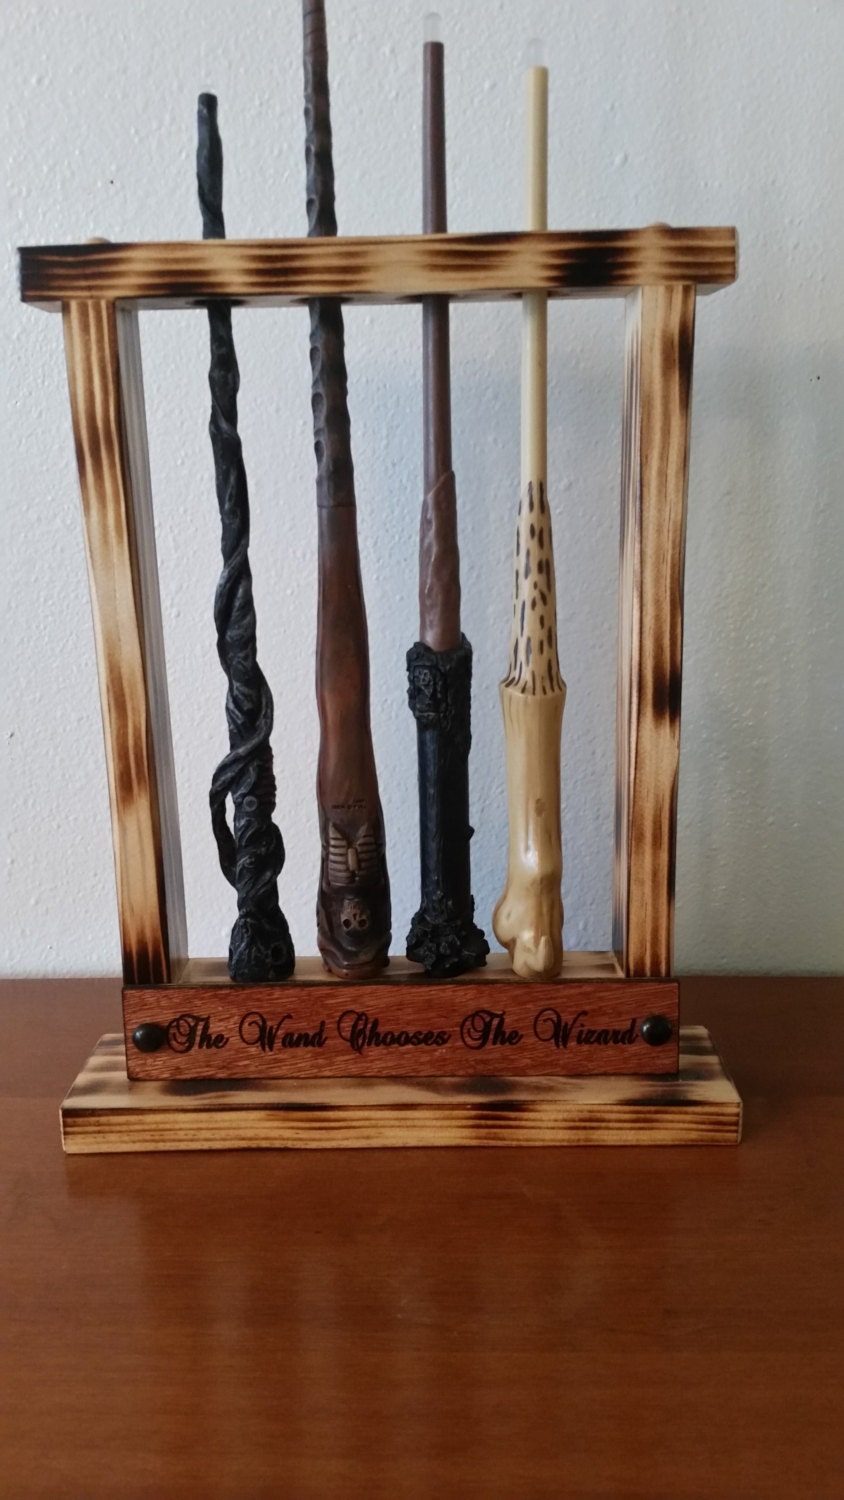 potter wand display magic wand holder holds 4 sticks table. Black Bedroom Furniture Sets. Home Design Ideas